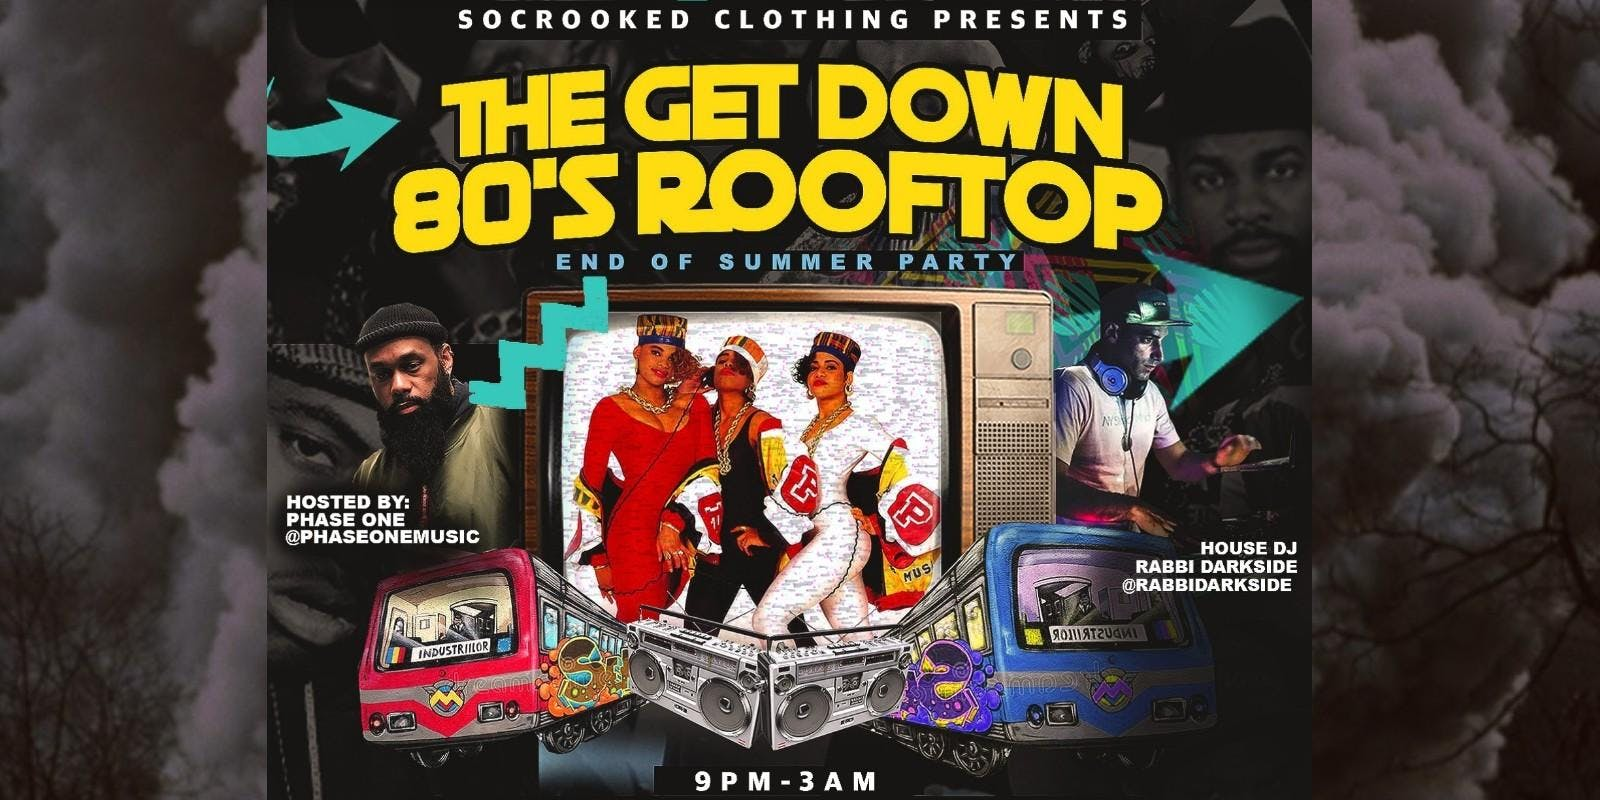 THE GET DOWN 80'S ROOFTOP END OF SUMMER PARTY